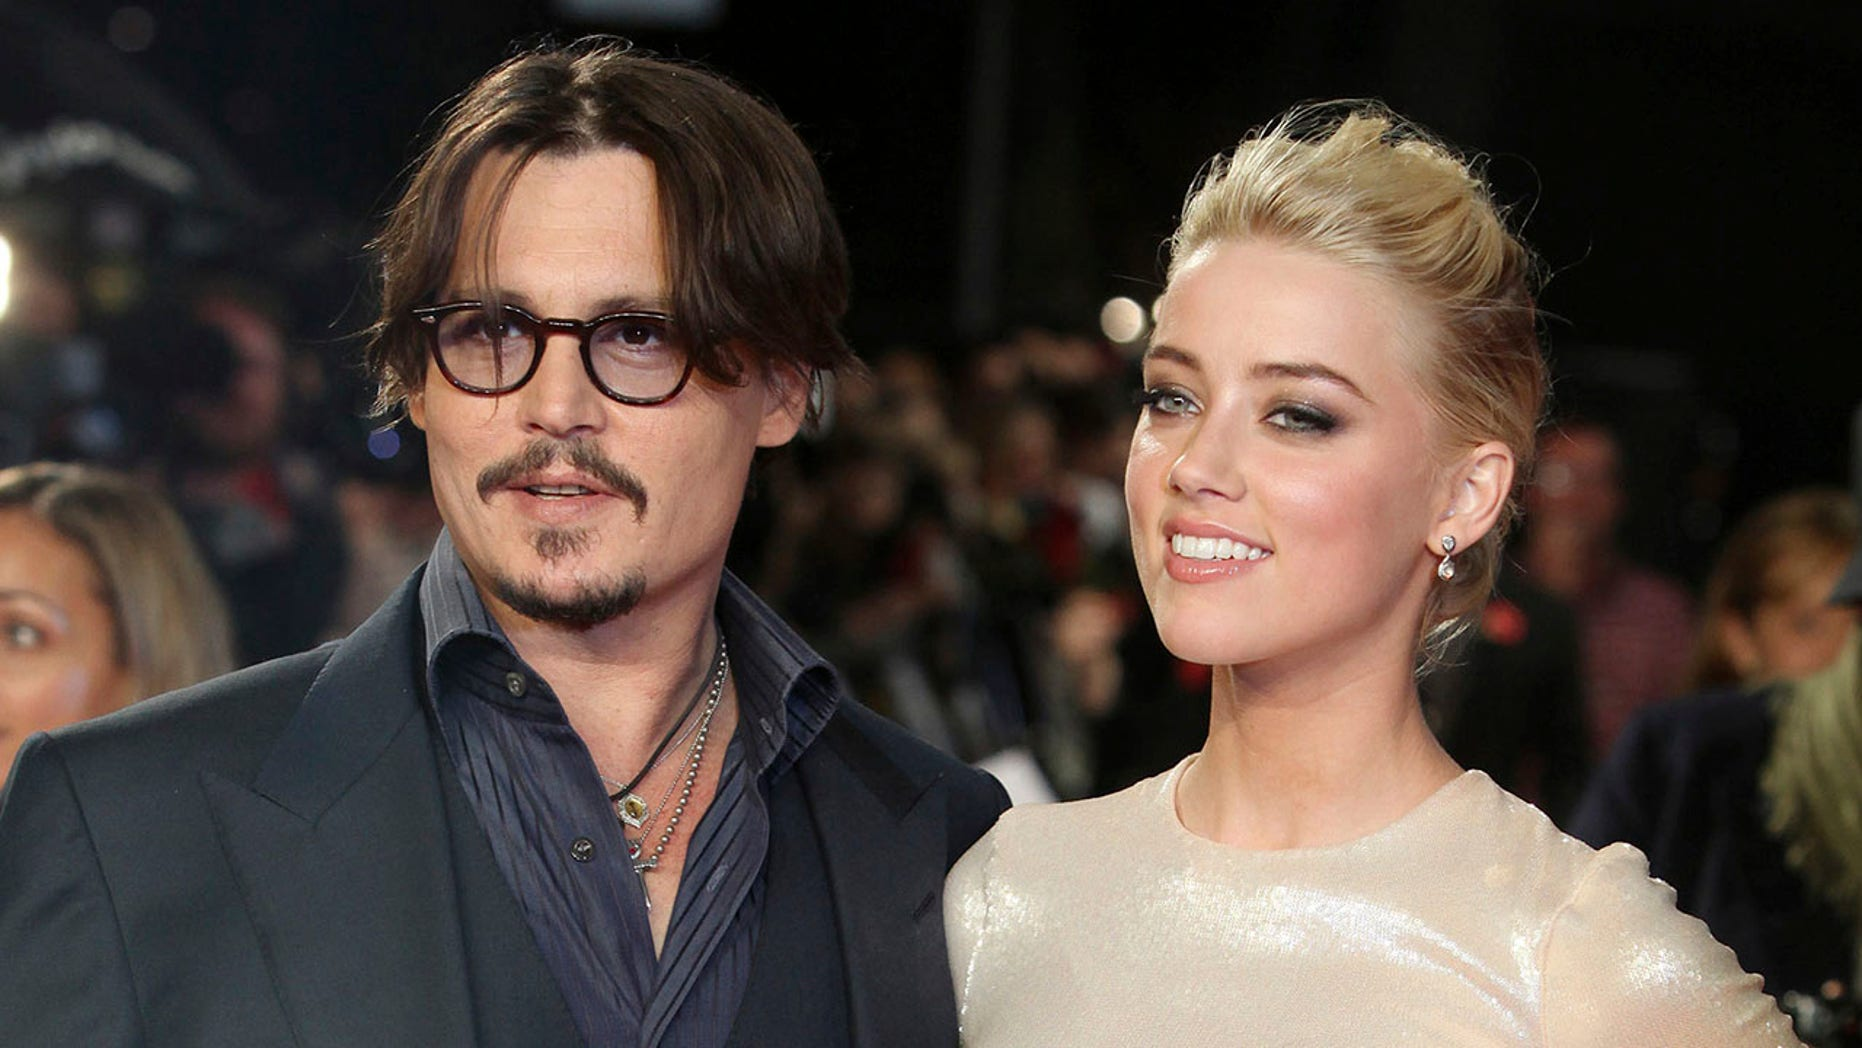 """Johnny Depp, left, and Amber Heard arrive for the European premiere of their film, """"The Rum Diary,"""" in London."""